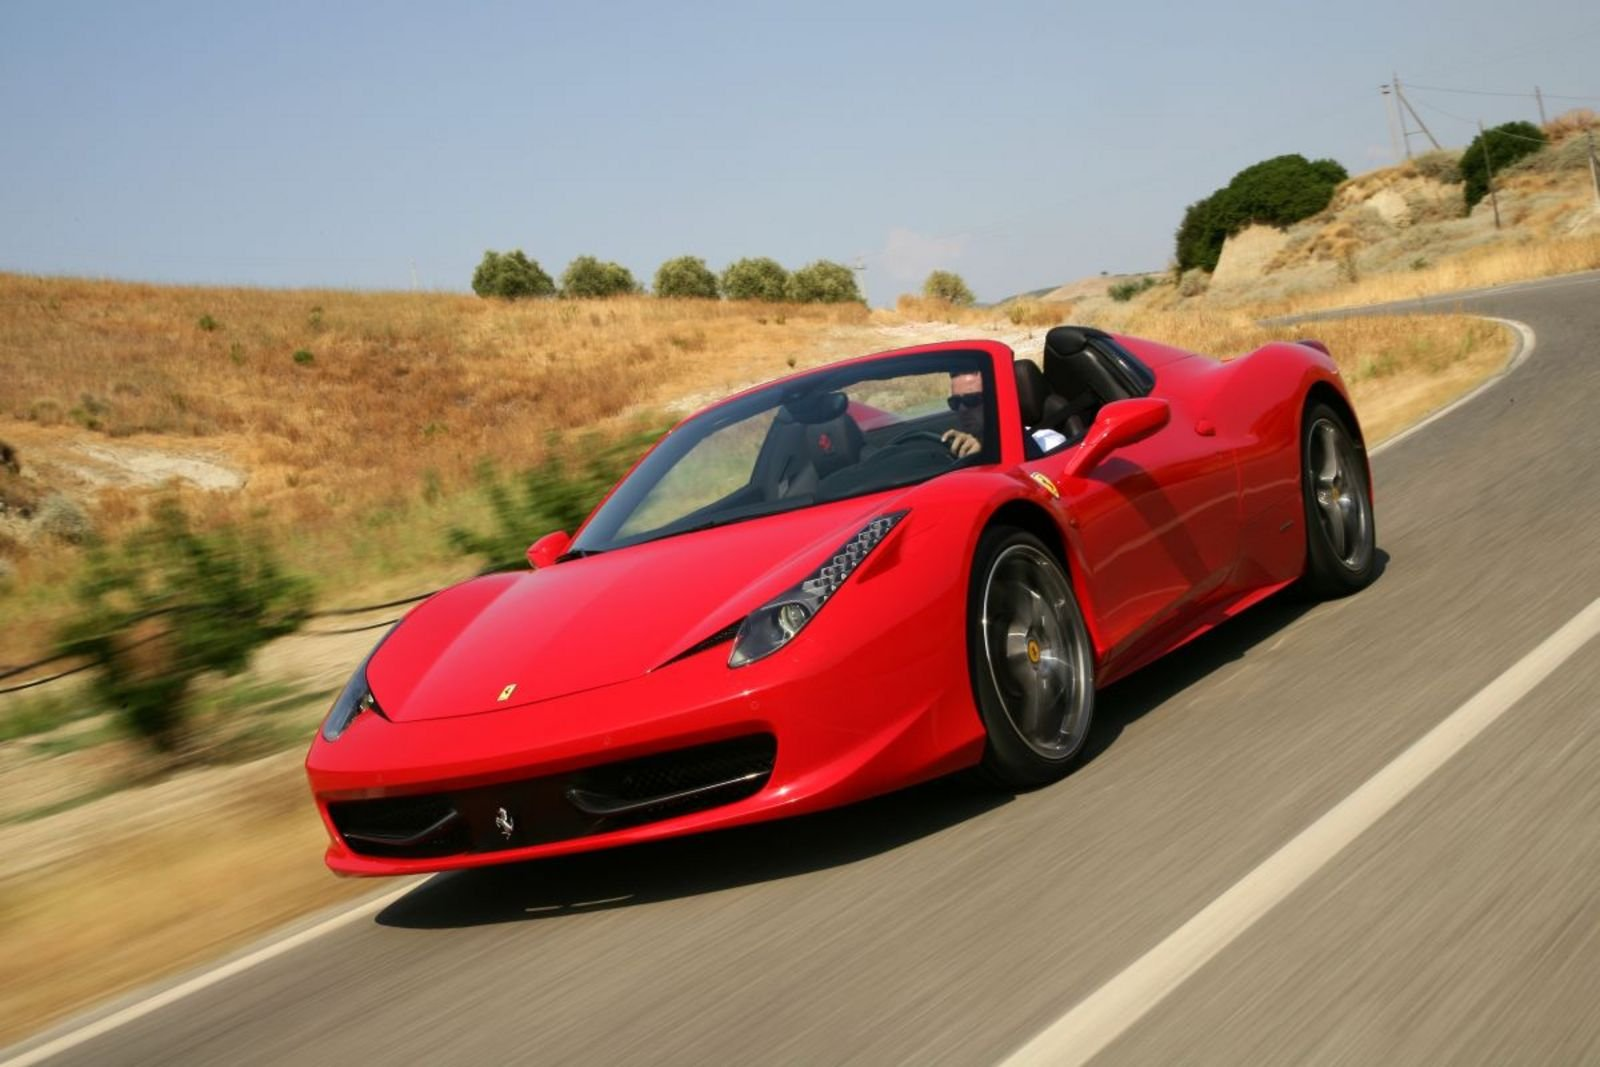 2012 ferrari 458 italia spider review top speed. Black Bedroom Furniture Sets. Home Design Ideas